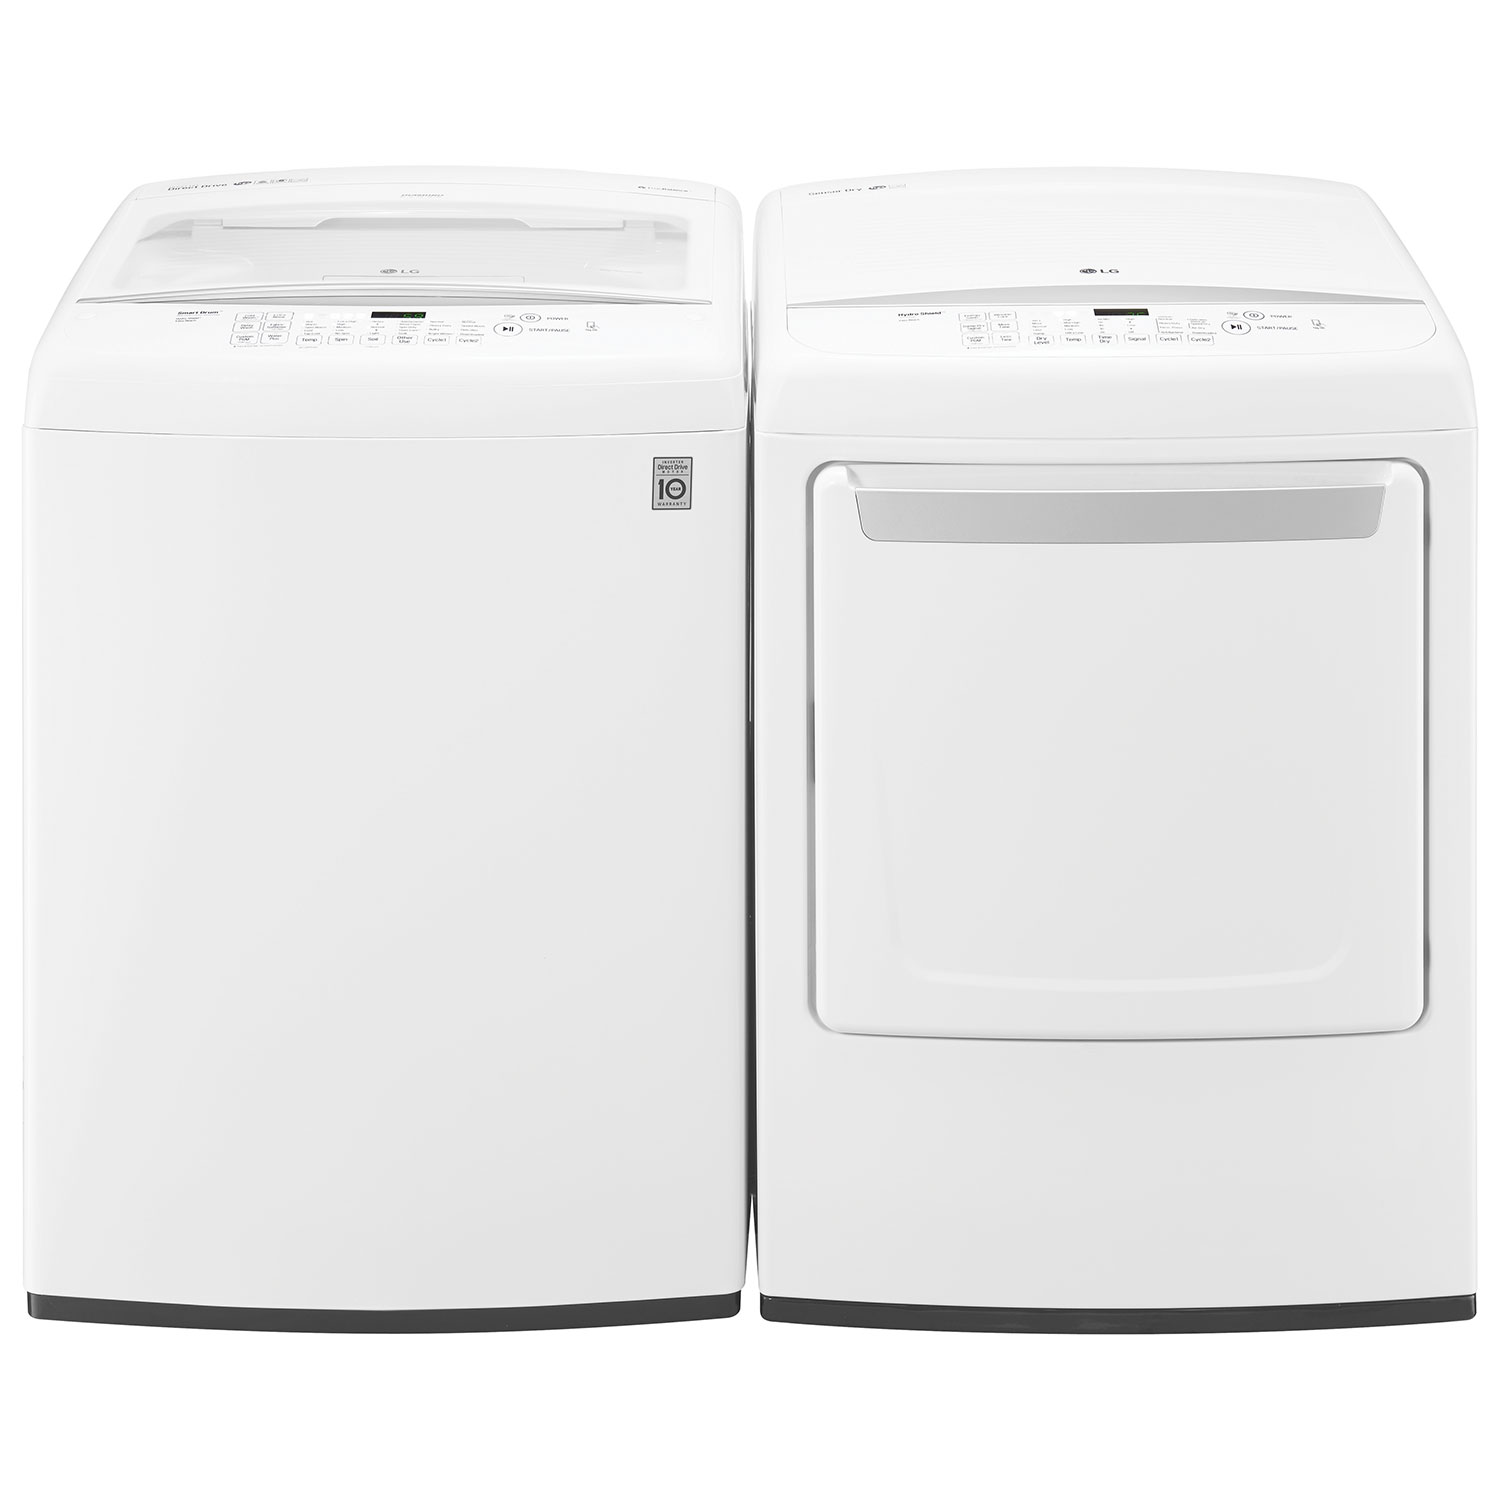 Topload Washer Lg 52 Cu Ft High Efficiency Top Load Washer Wt1501cw White